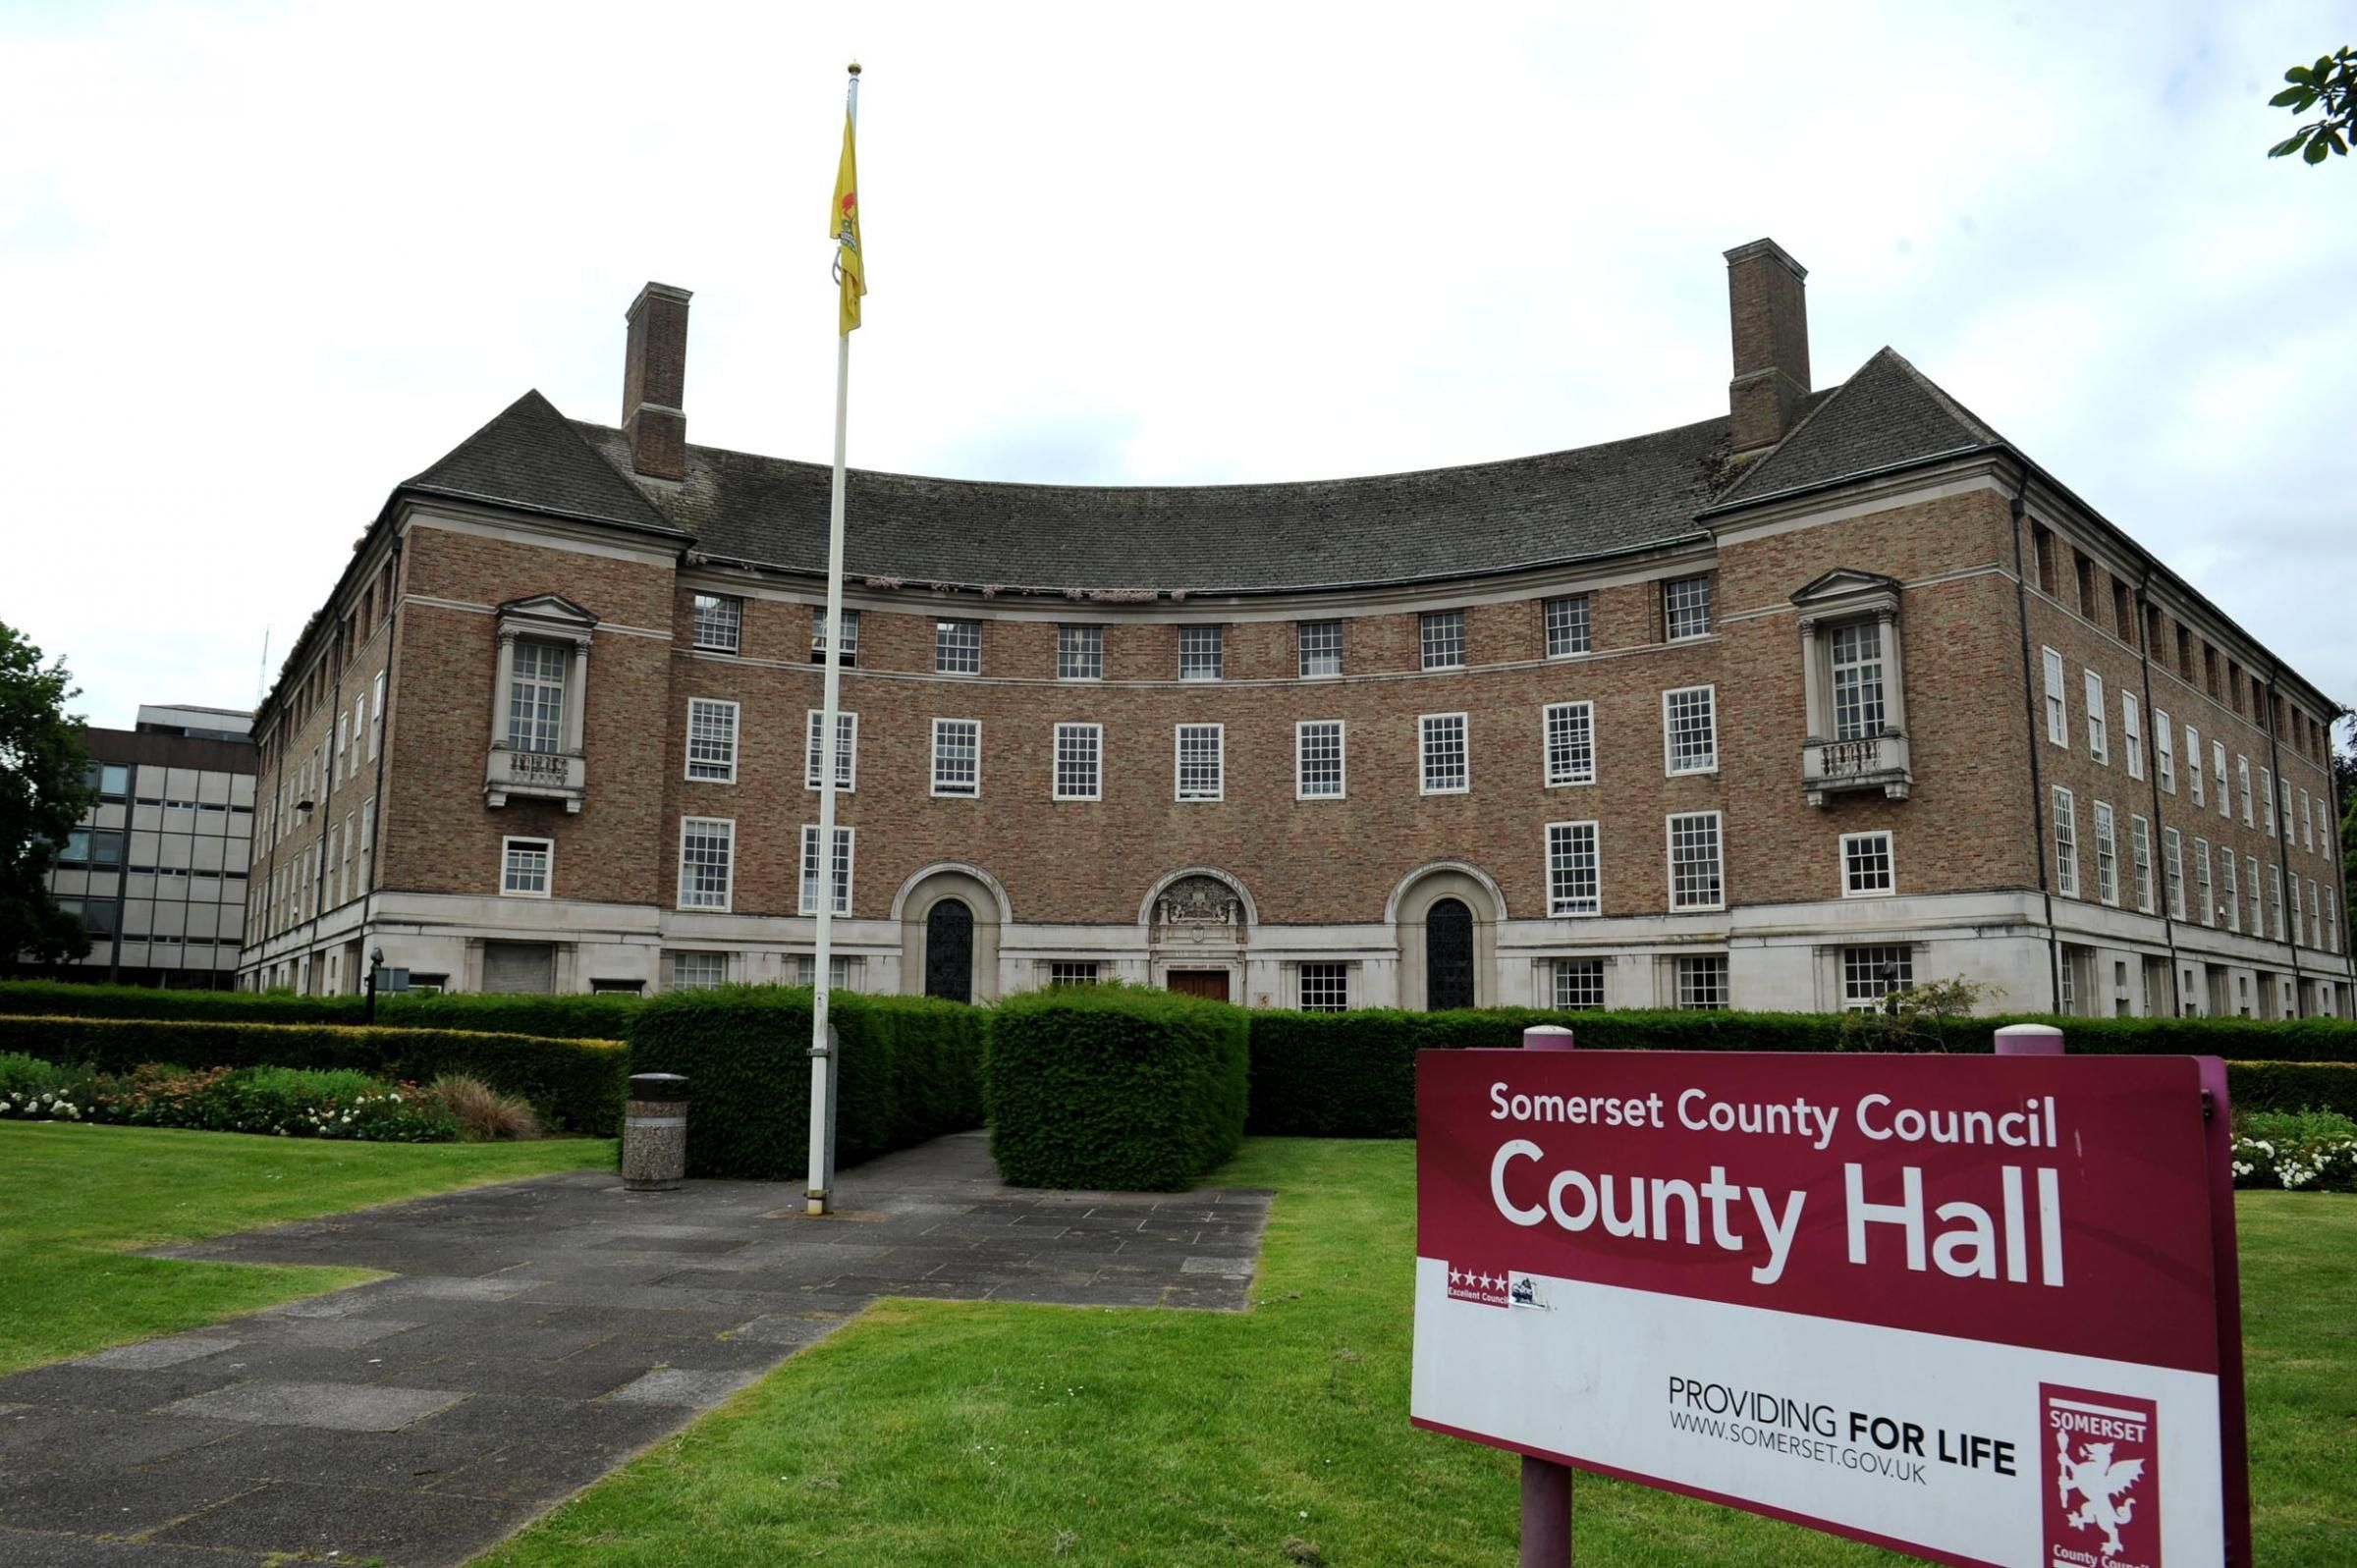 County Hall, home to Somerset County Council